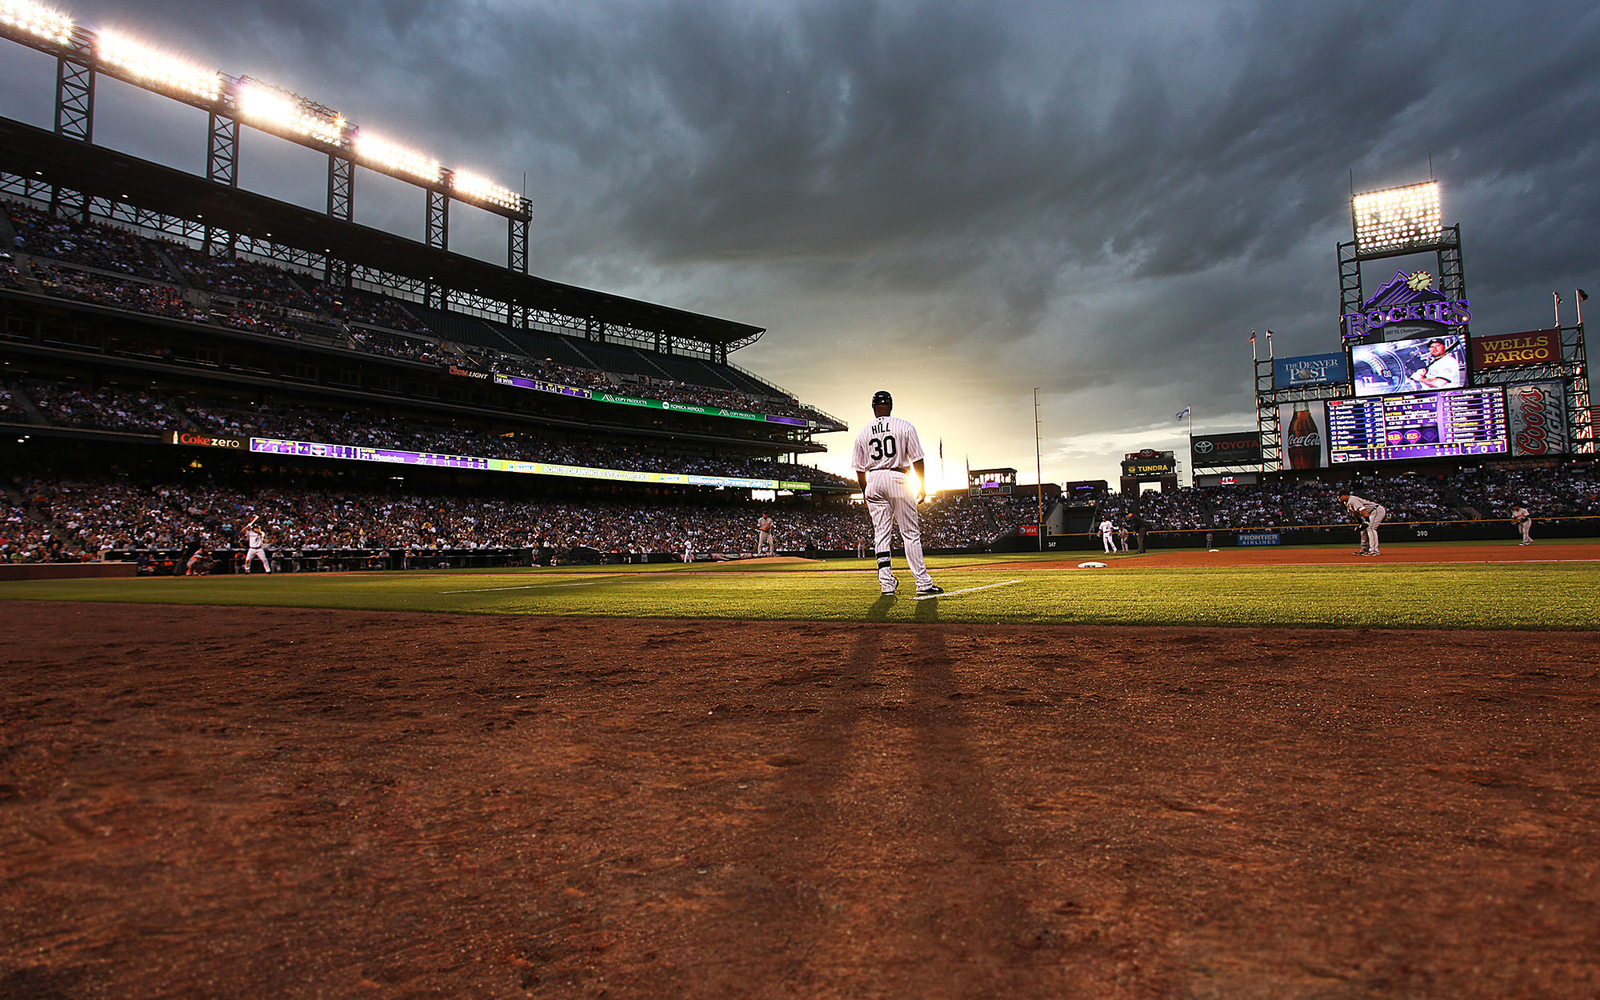 Coors Field: Colorado Rockies